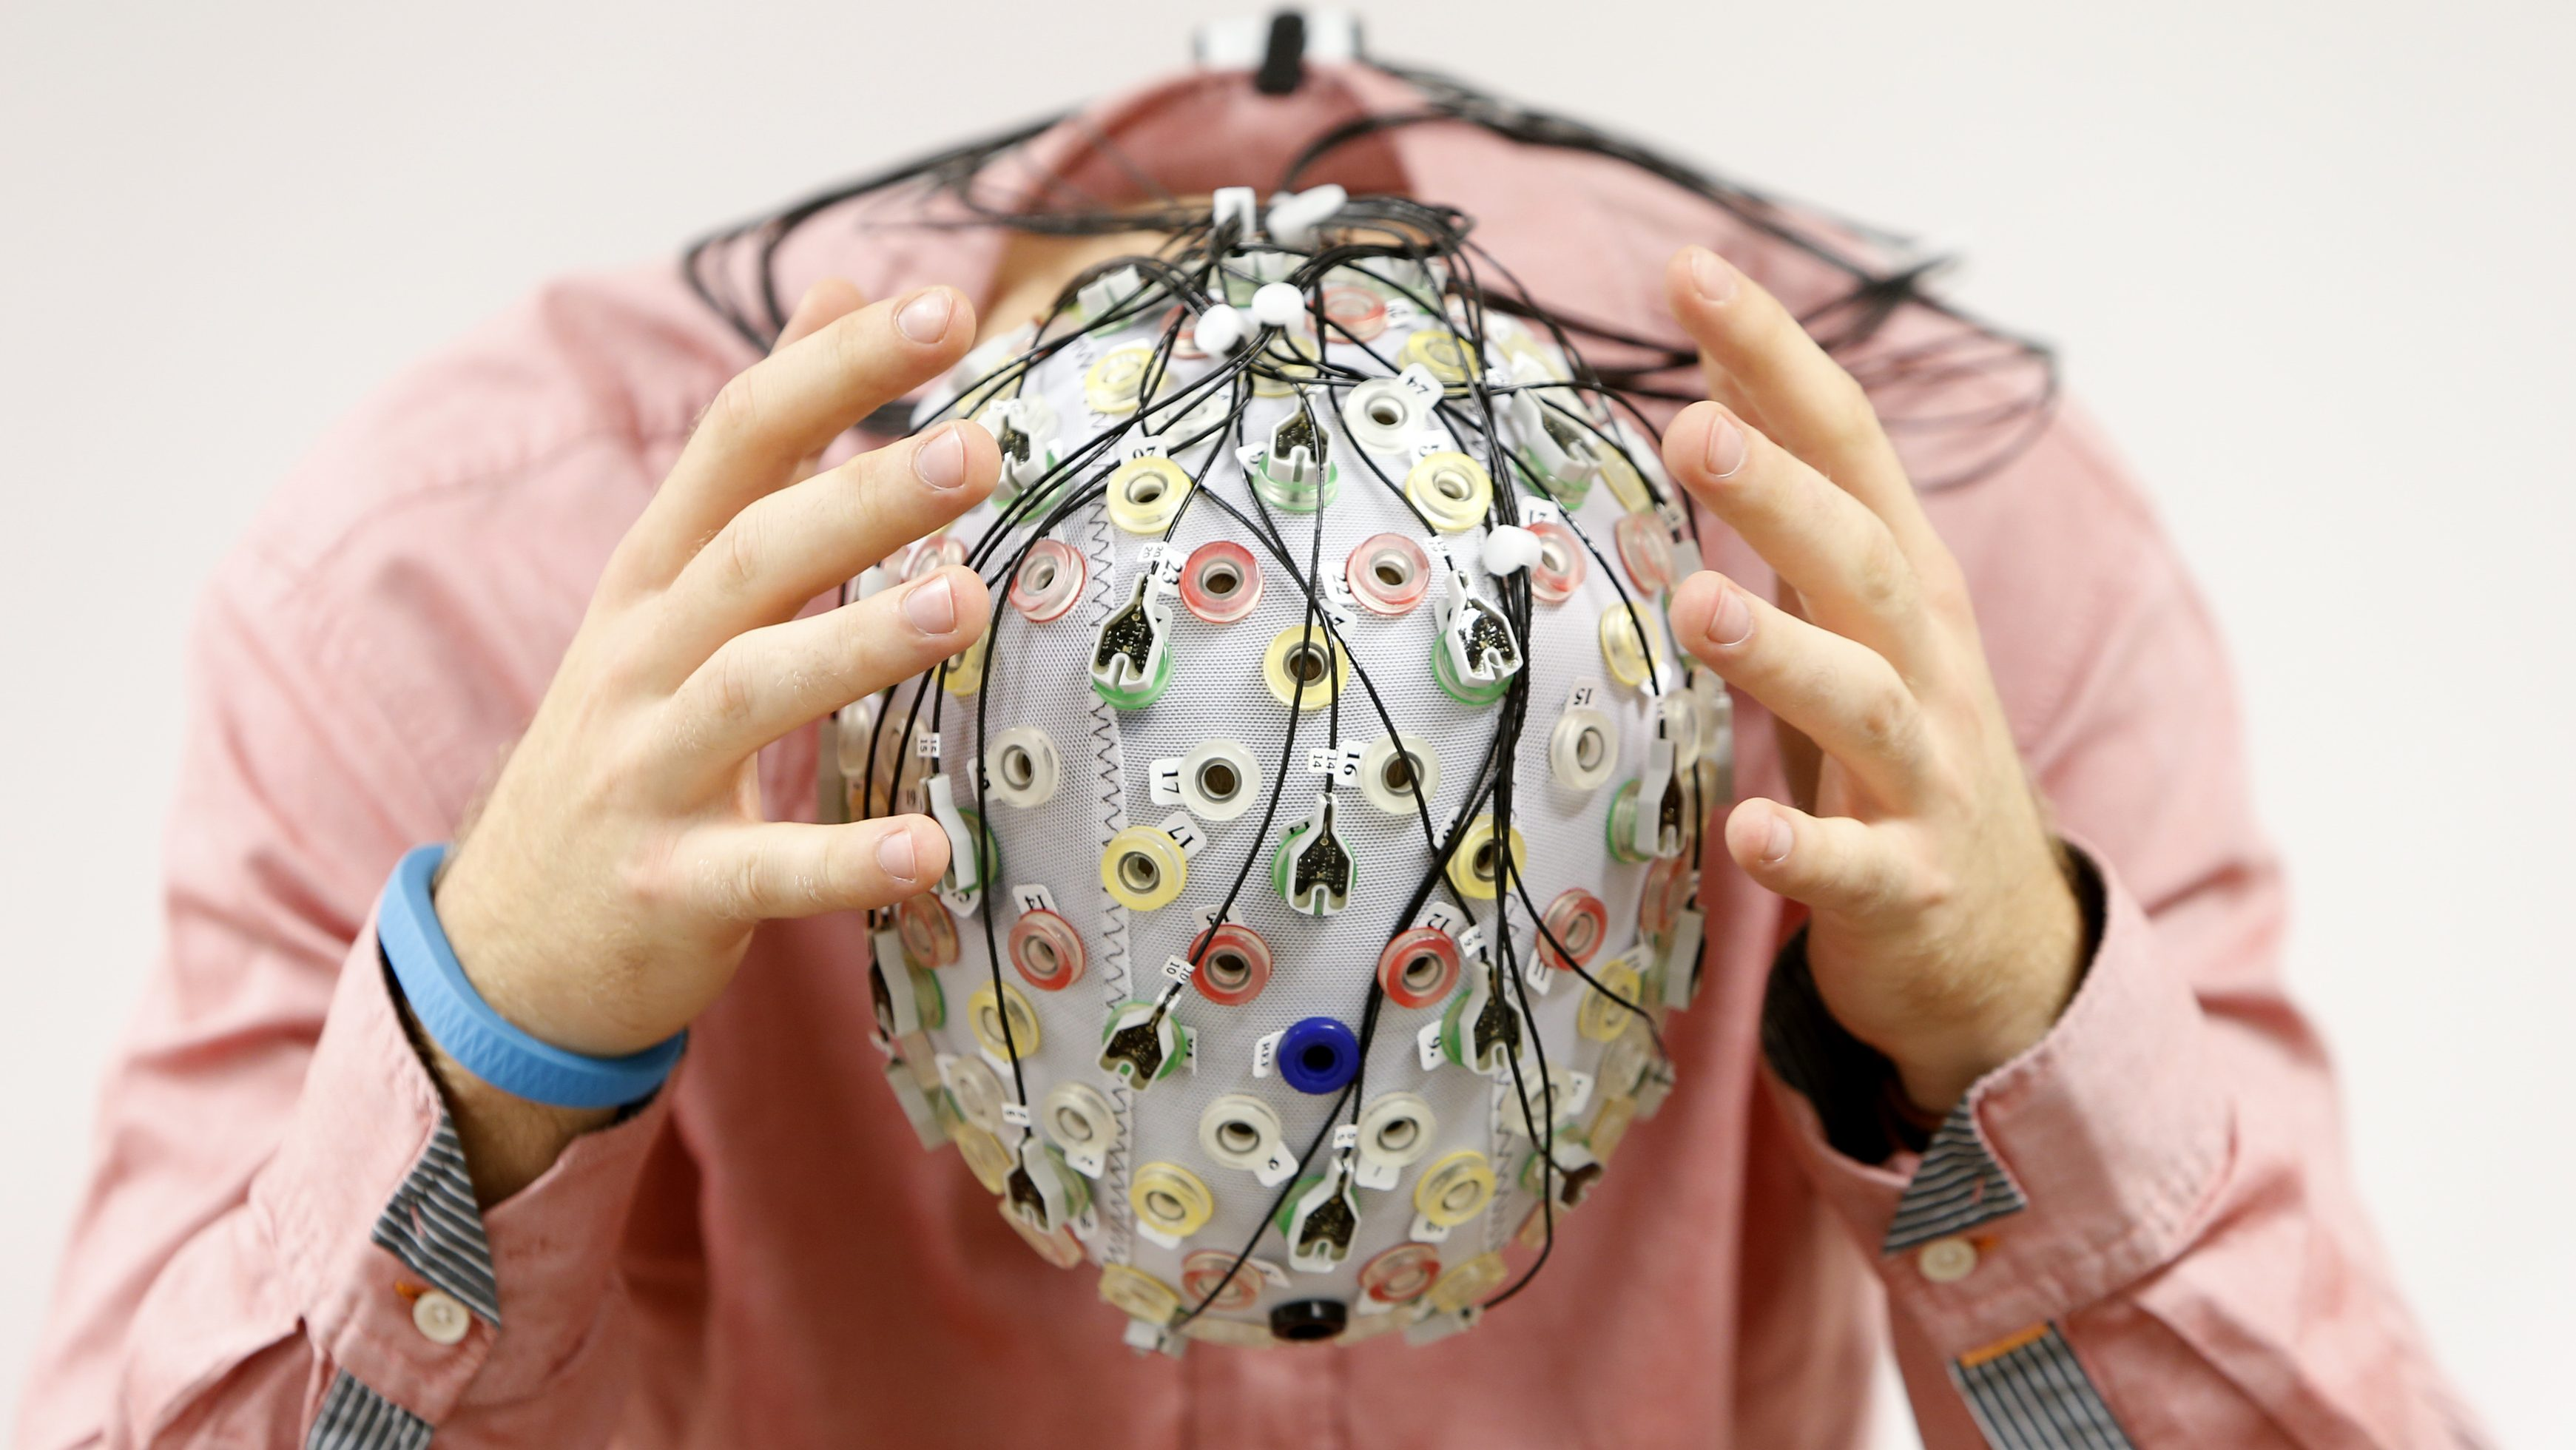 Test subject in an electroencephalography (EEG) cap